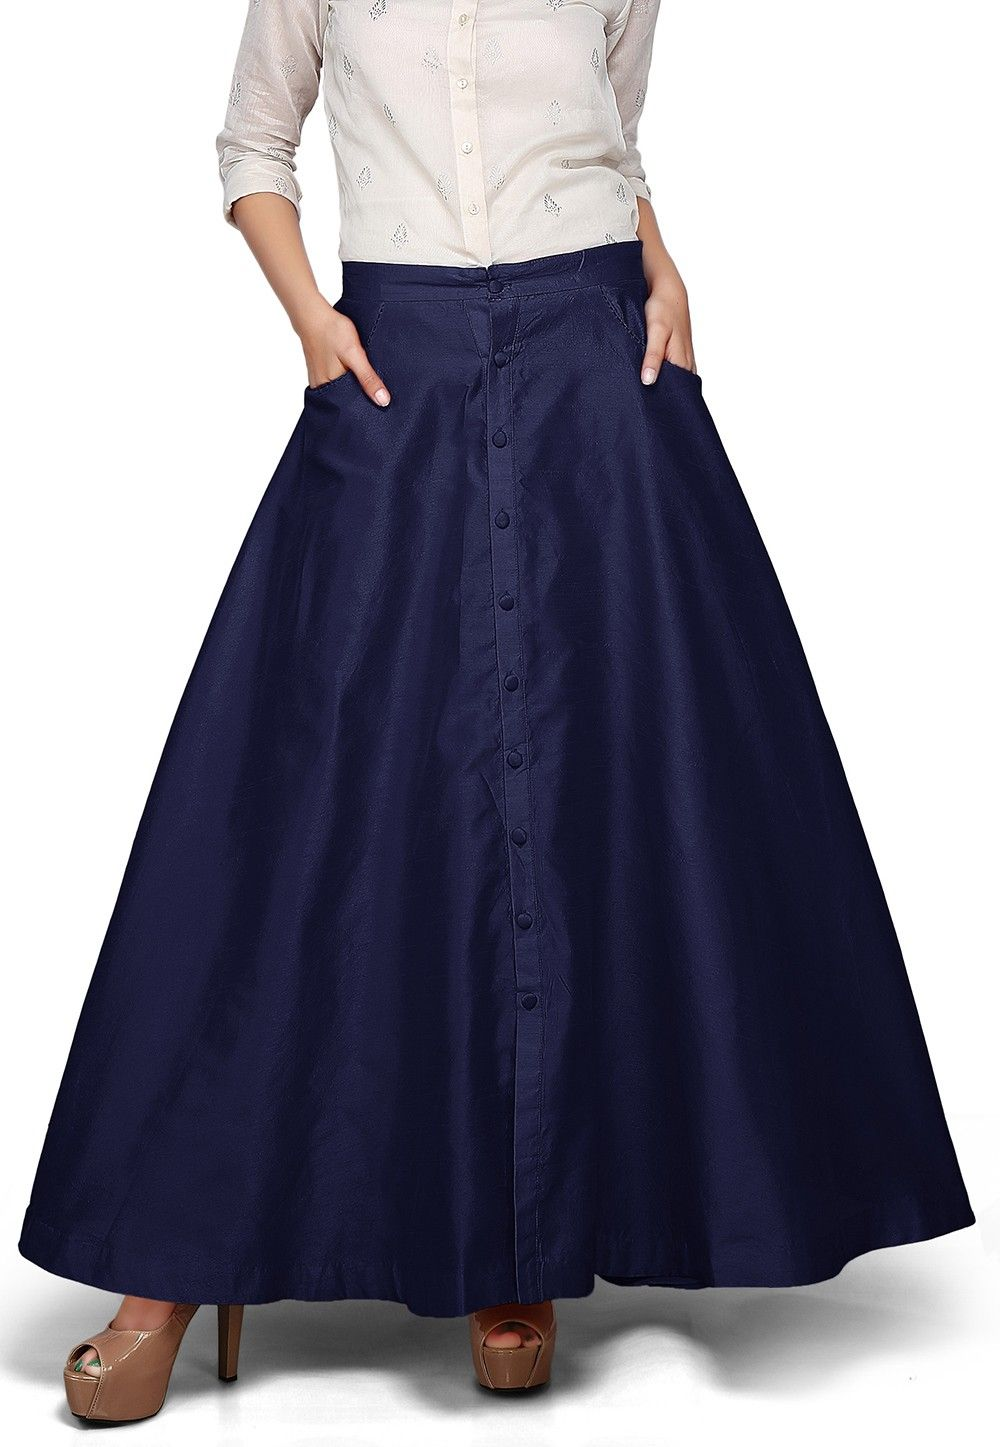 Plain Dupion Silk Long Skirt in Navy Blue